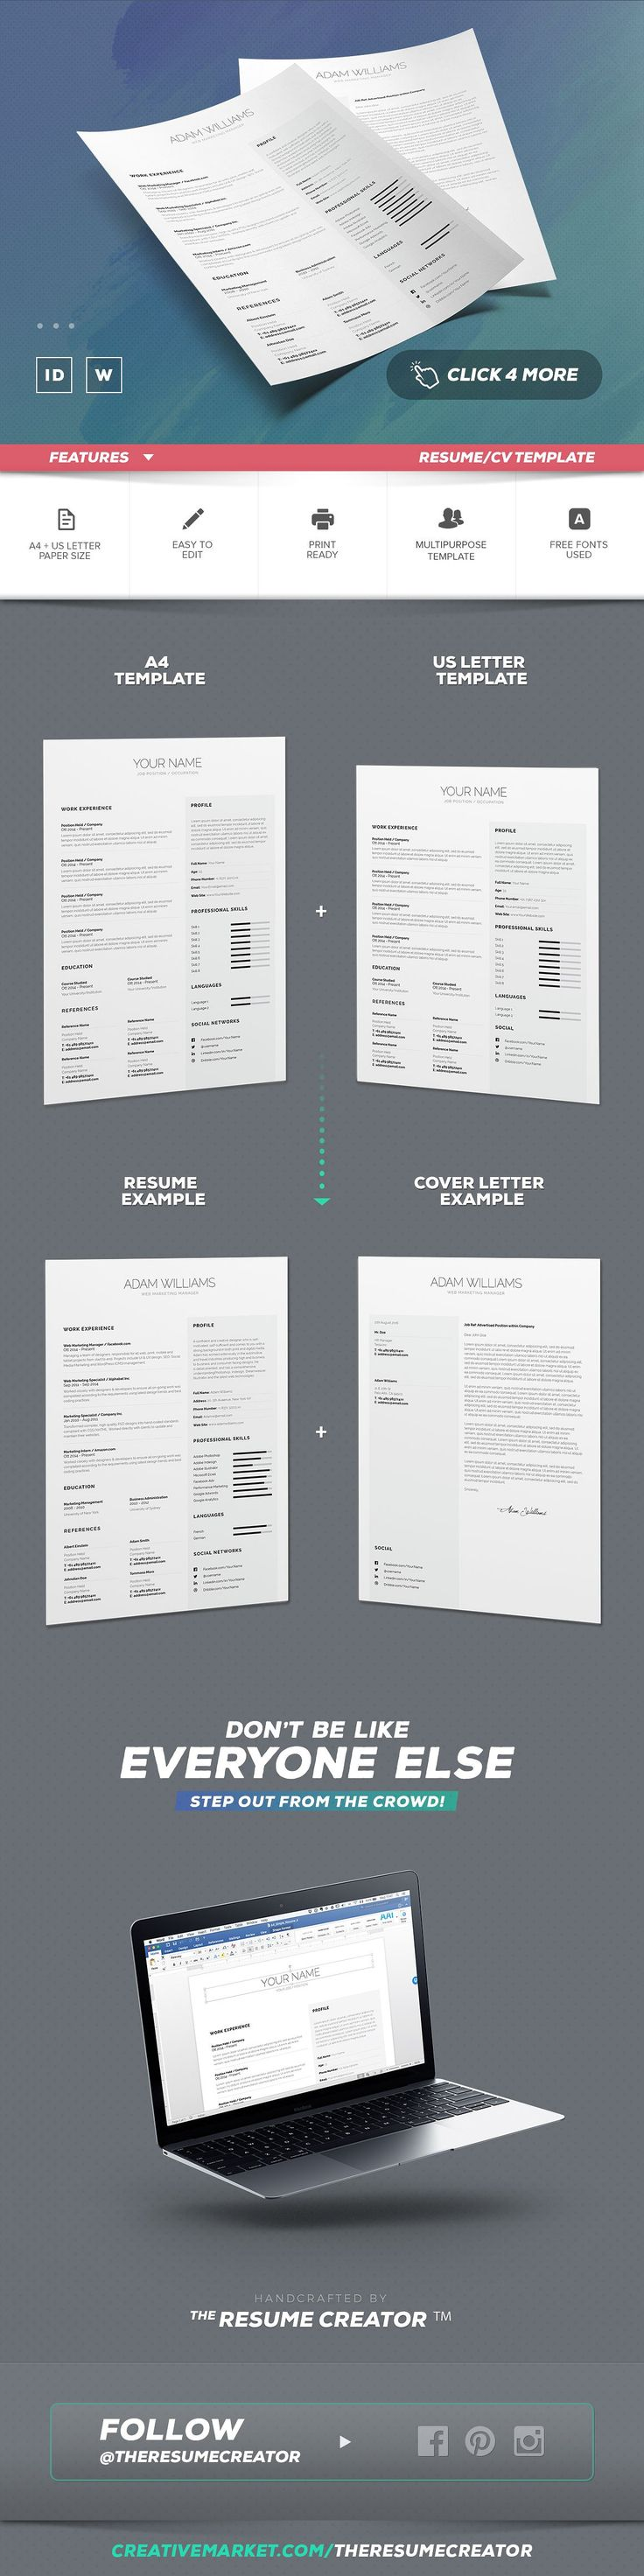 cover letter for sales manager position%0A Simple Resume Cv Volume   by Professionally designed  easytoedit template  package for the job seeker who wants to leave an unforgettable impression